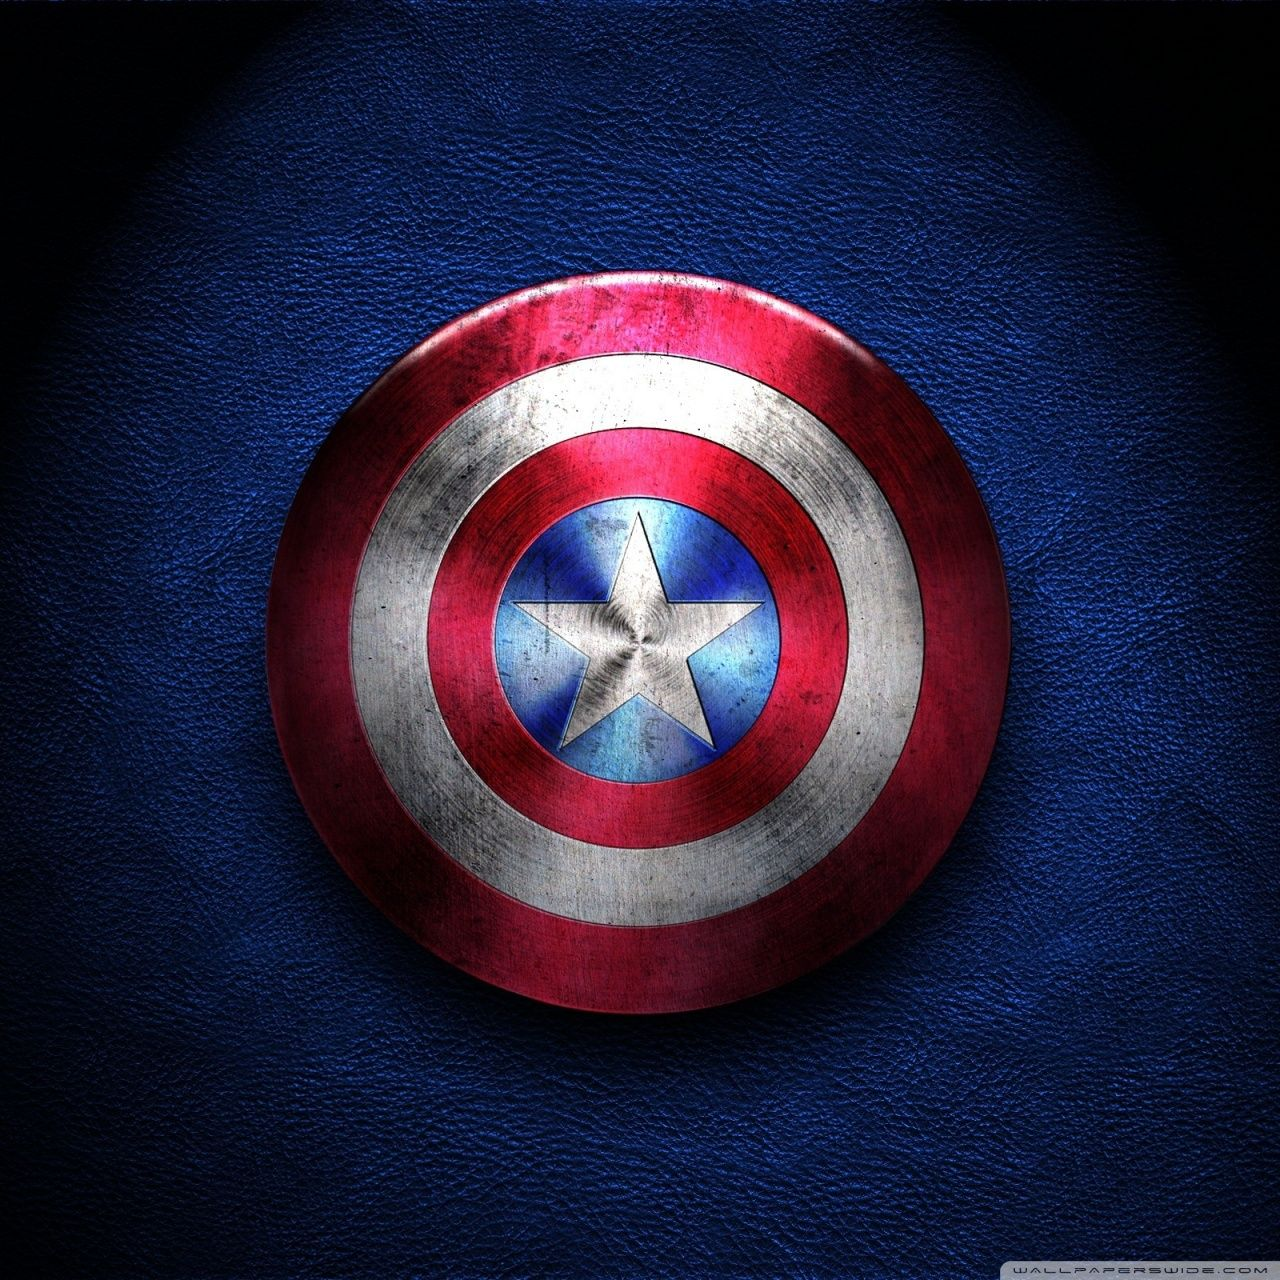 Captain America Shield Android Wallpaper Free Download Captain America Wallpaper Captain America Shield Wallpaper Captain America Shield